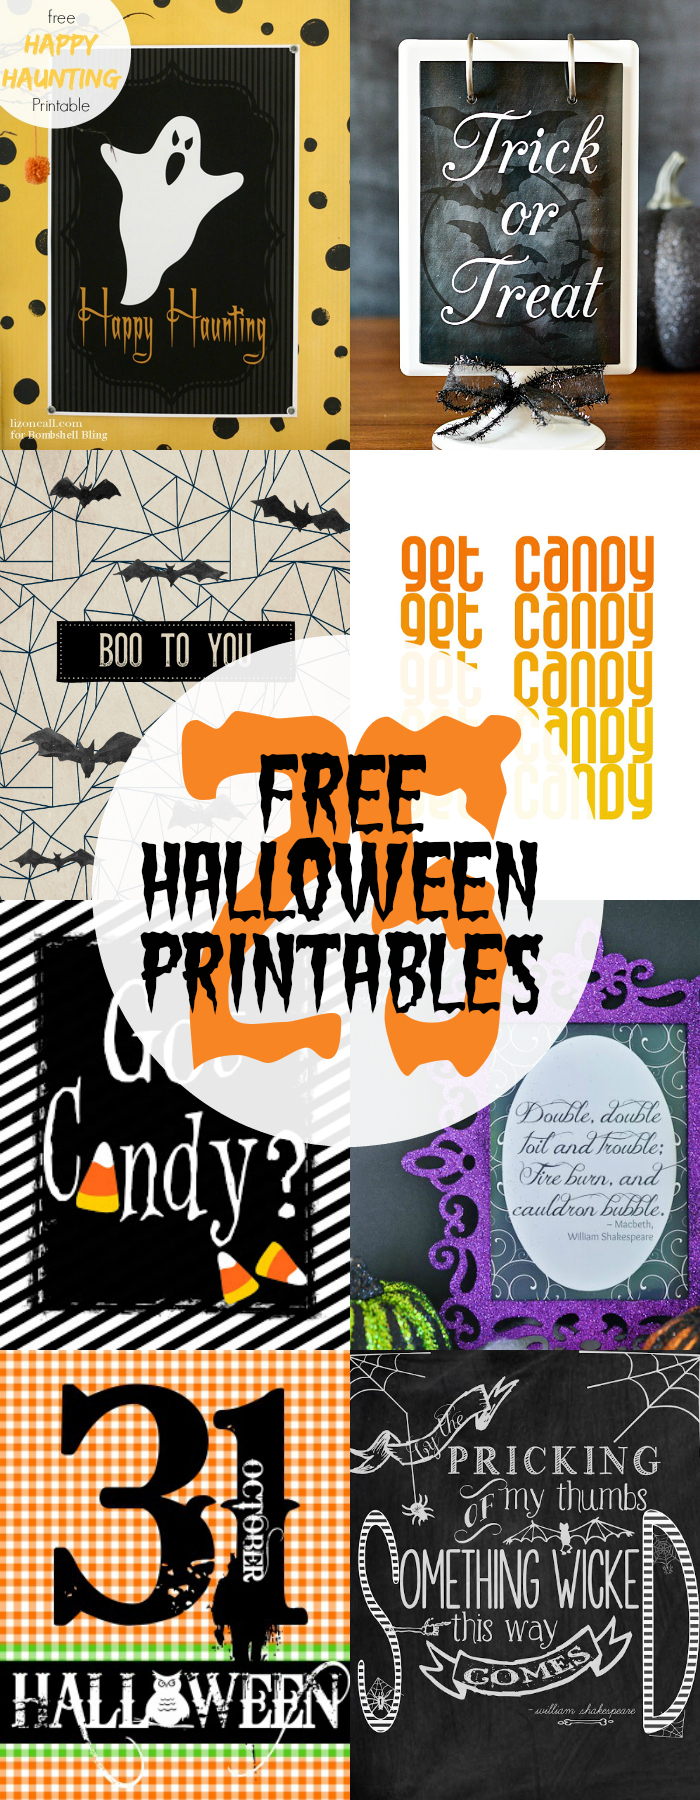 It's just a graphic of Crazy Free Printable Halloween Decorations